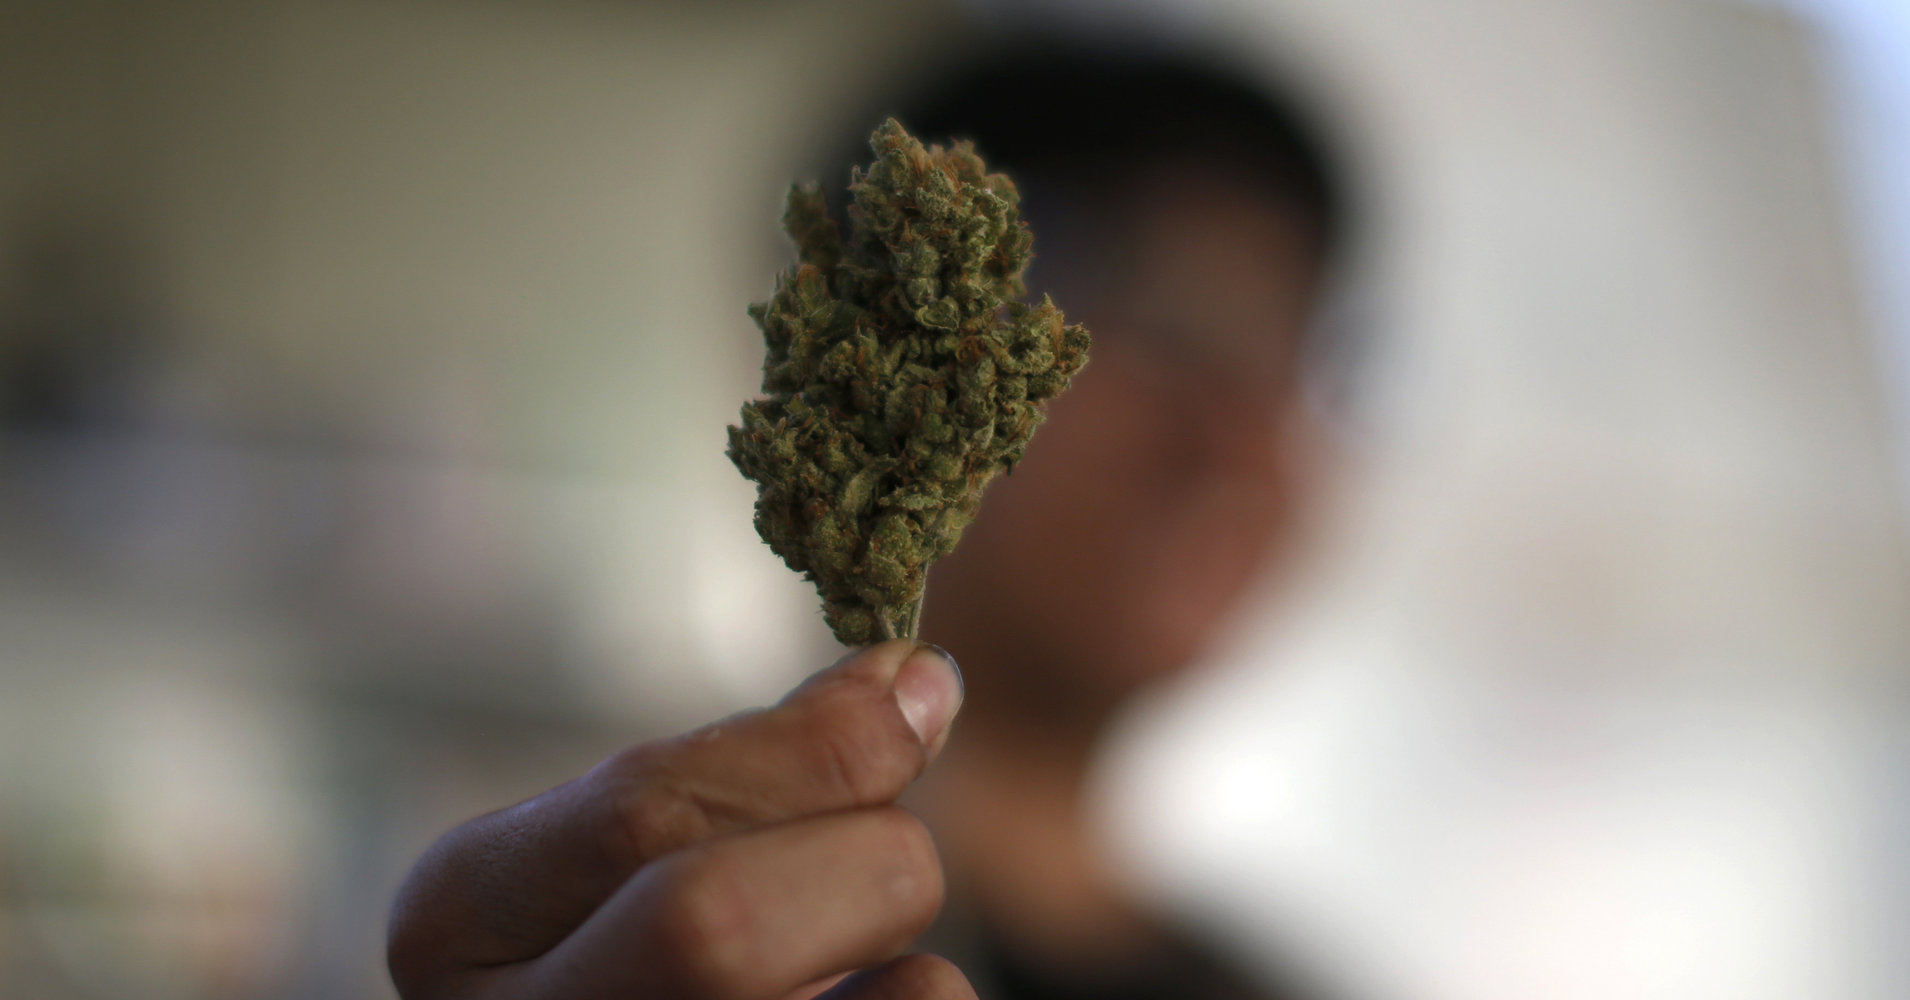 Los Angeles Is Set To Become The Largest U.S. City With Legal Marijuana